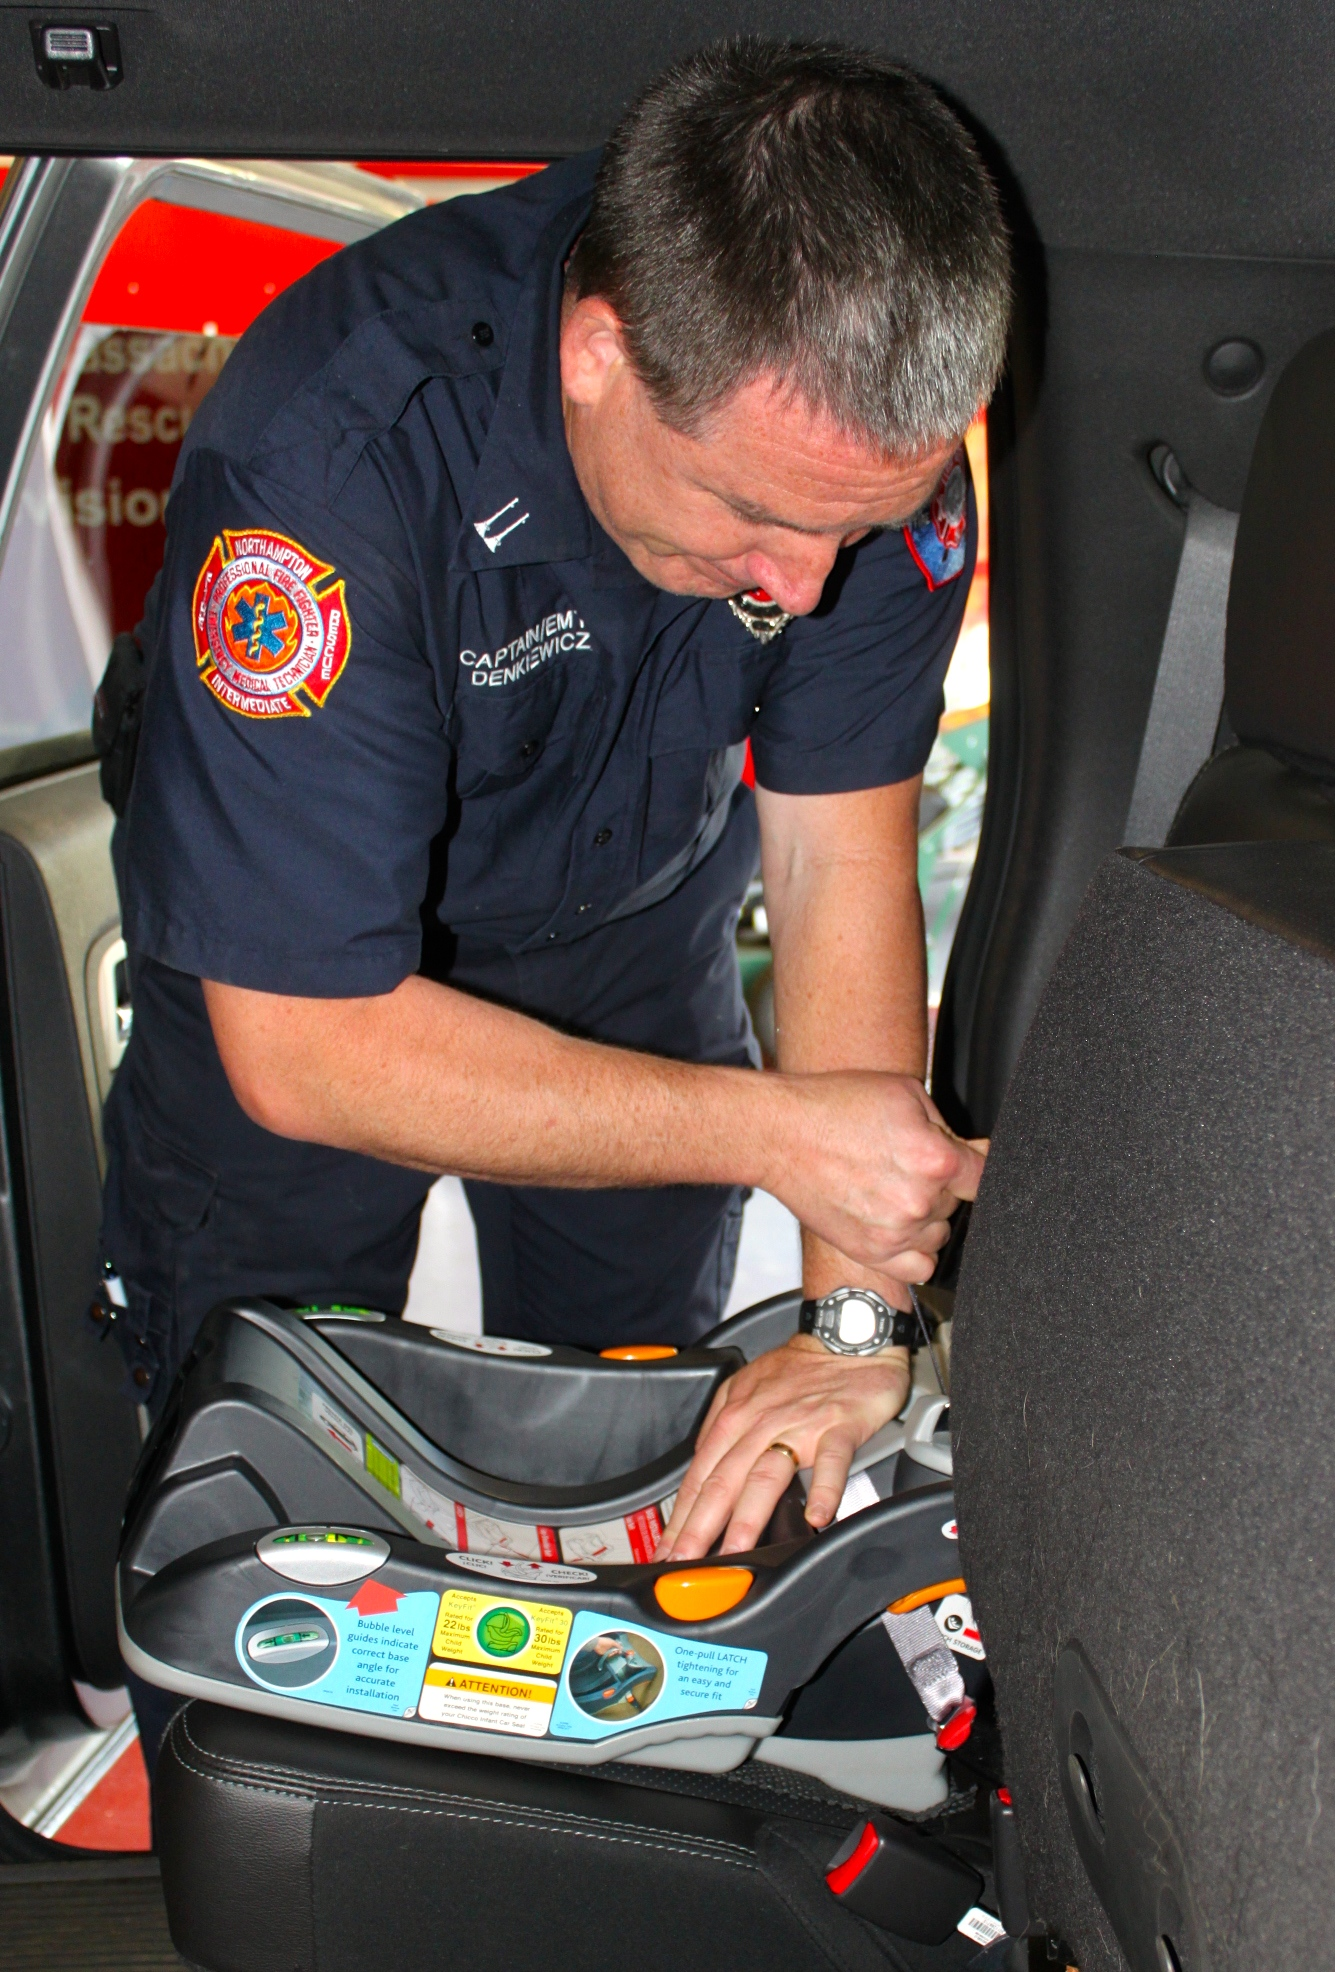 Police Officer Inspecting Car Seat